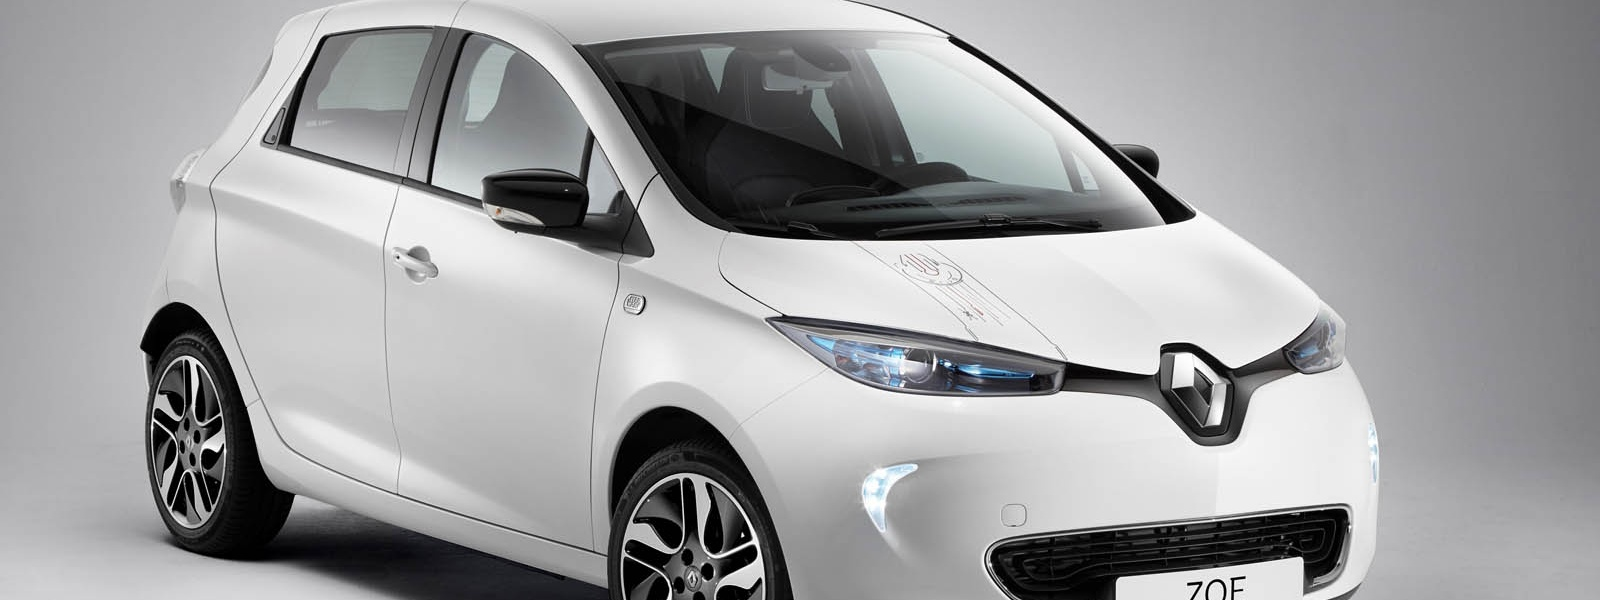 21201617_2017_Renault_ZOE_Star_Wars_Limited_Edition.jpg